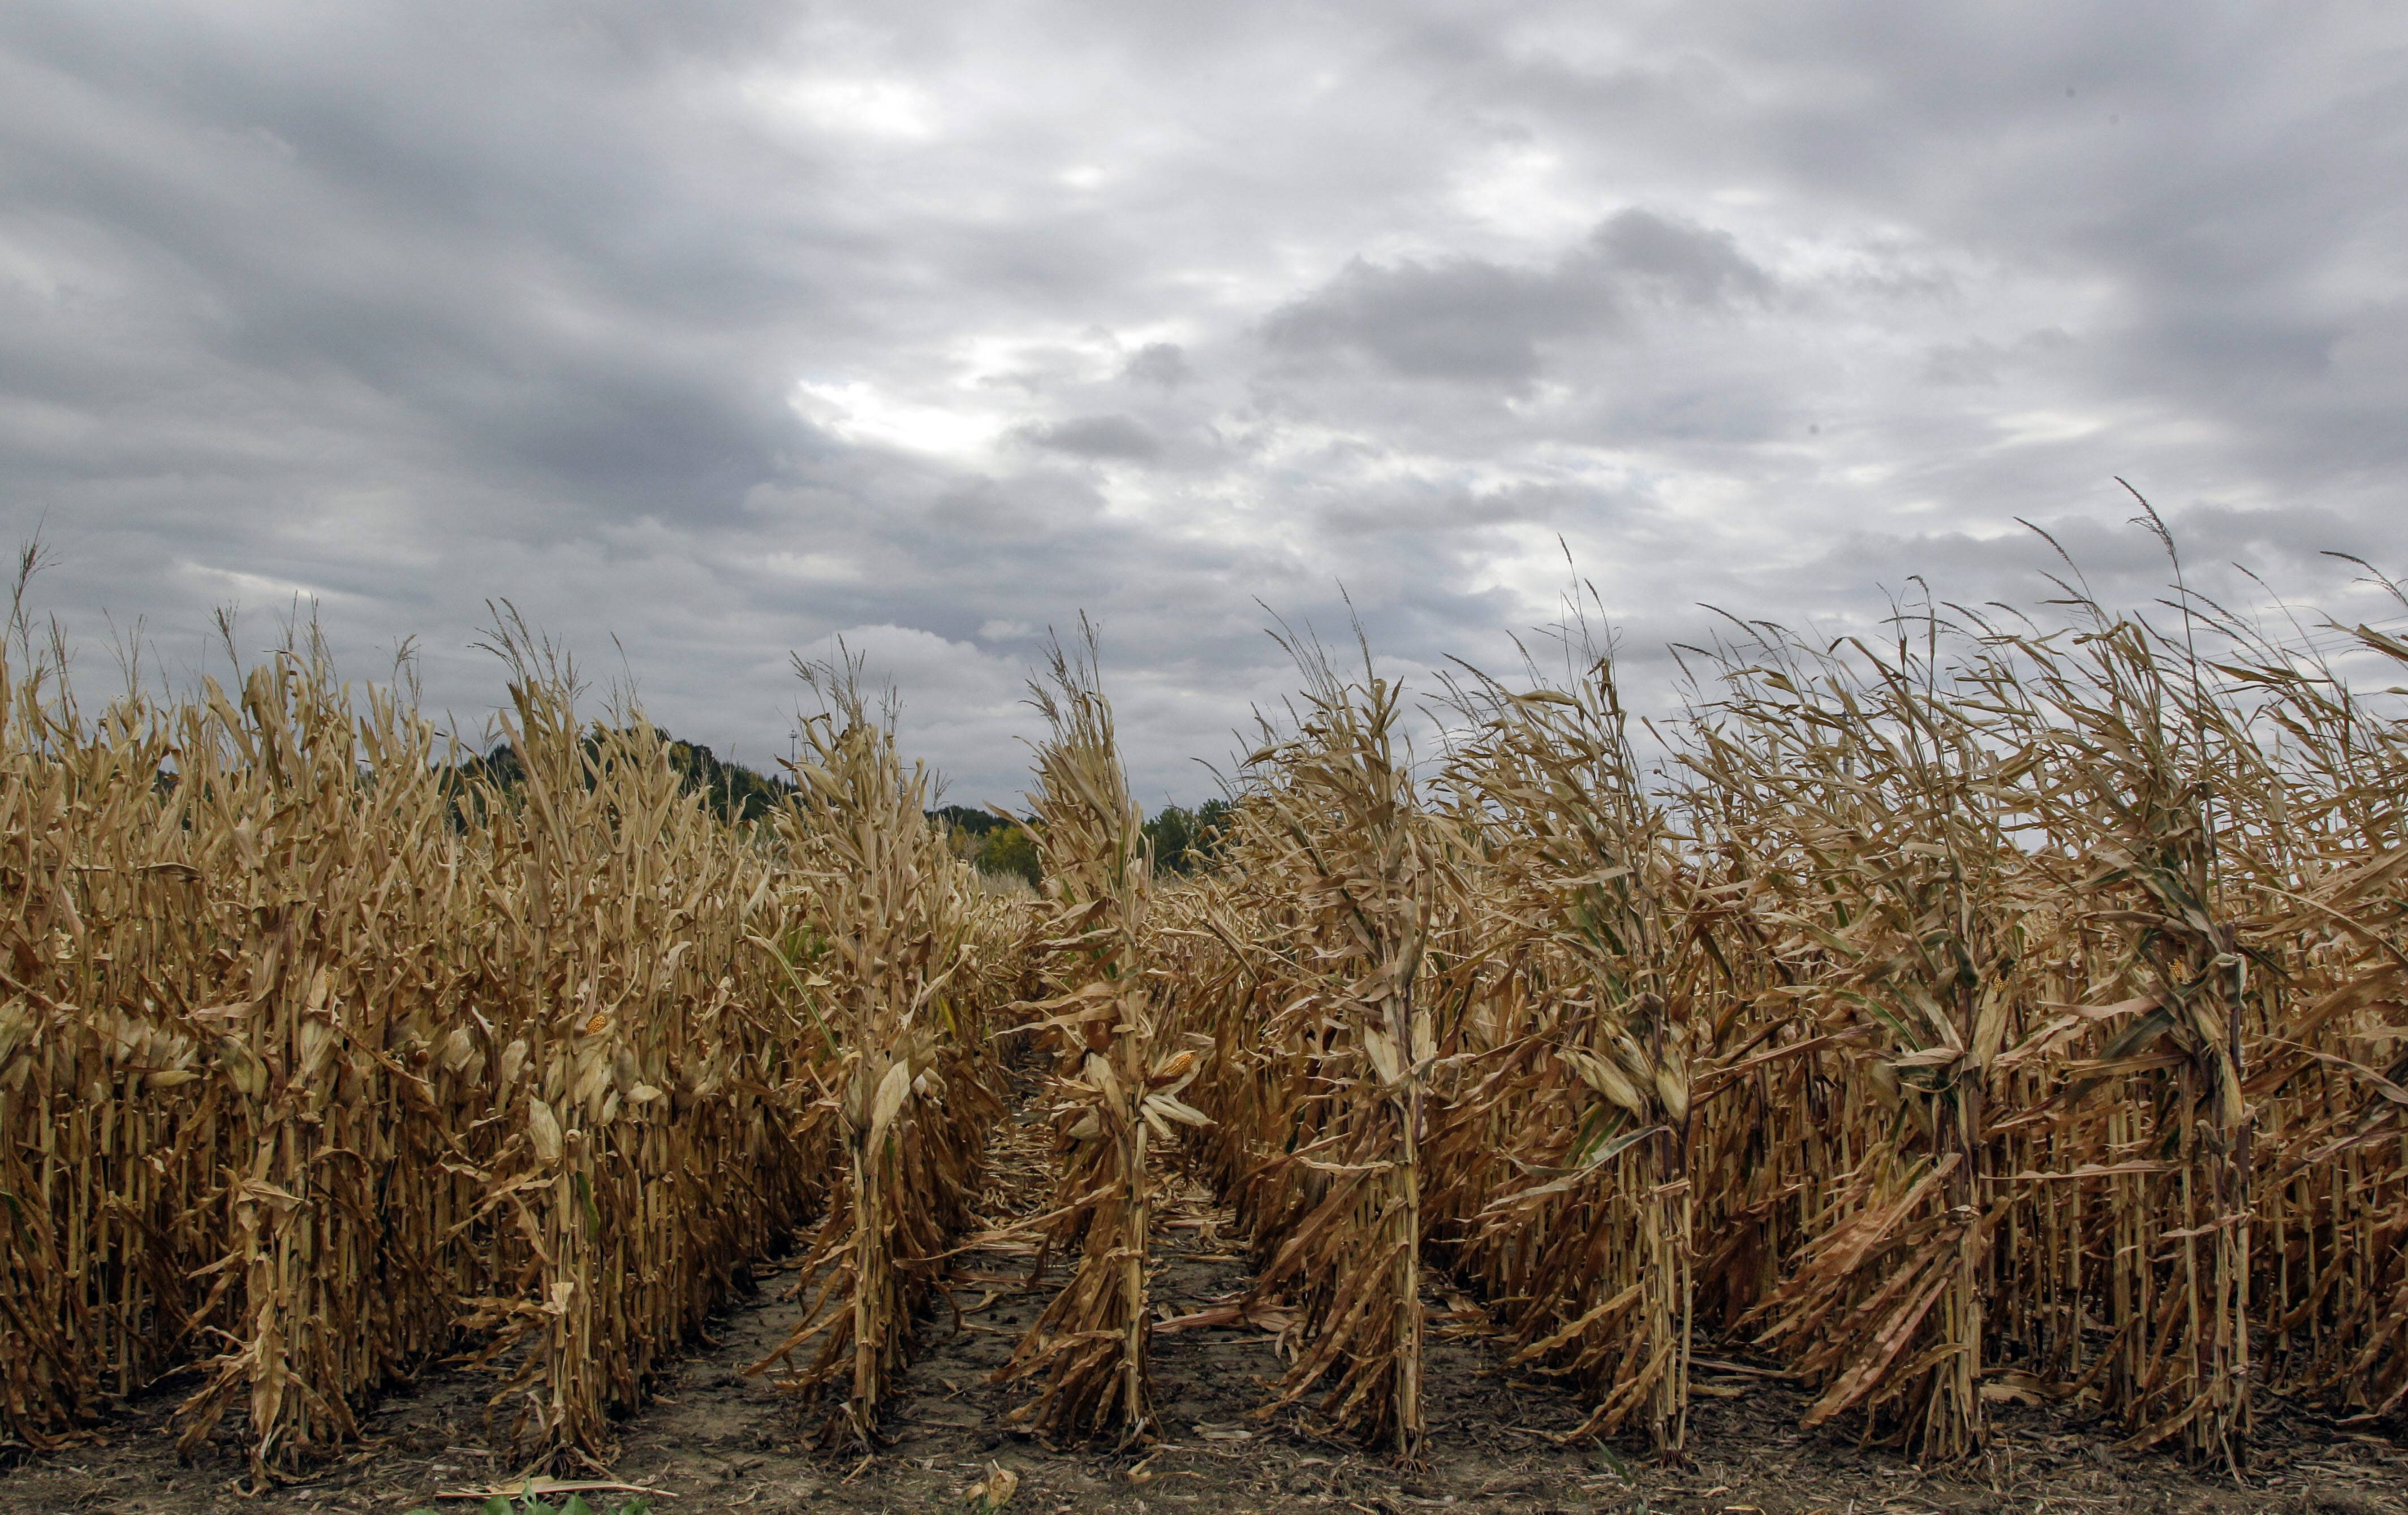 Farmers will produce a record-breaking corn harvest this year, surpassing earlier expectations of the U.S. Department of Agriculture, which has revised upward its estimate of this year's corn harvest to 14 billion bushels.